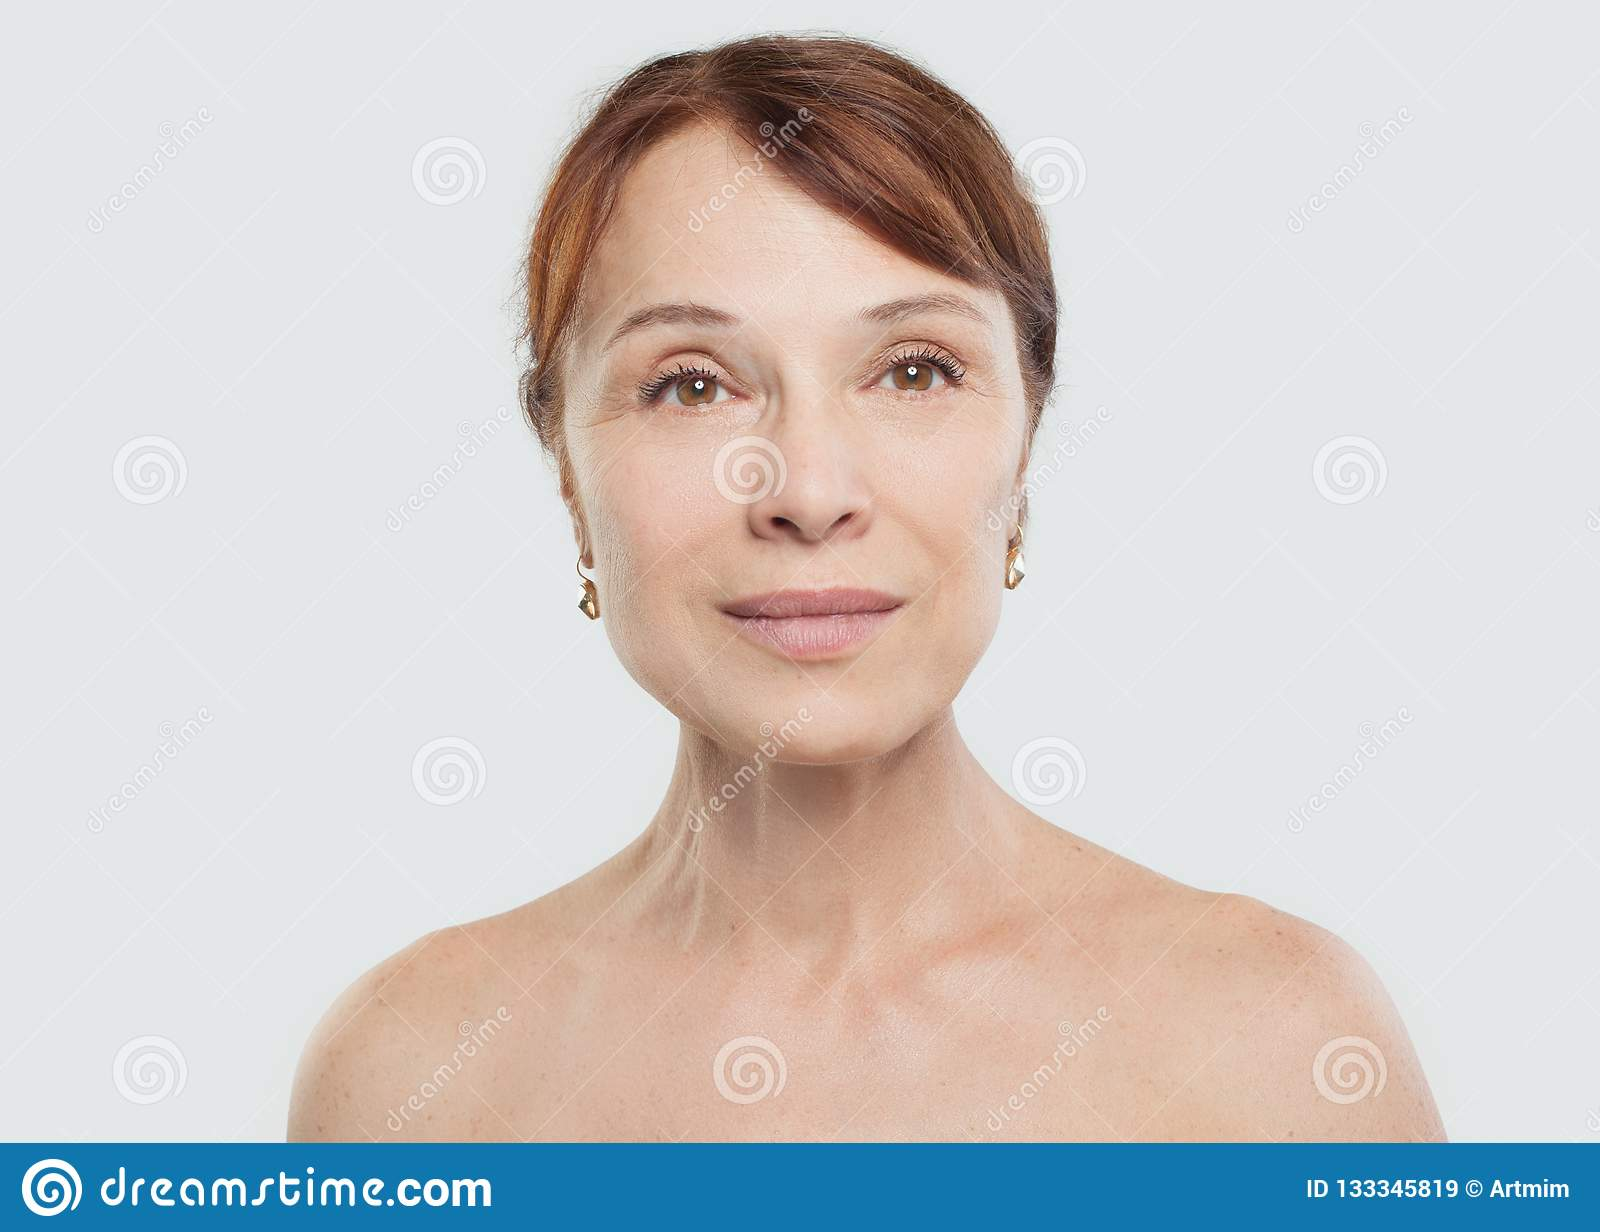 Mature woman smiling. Beautiful mid adult female face